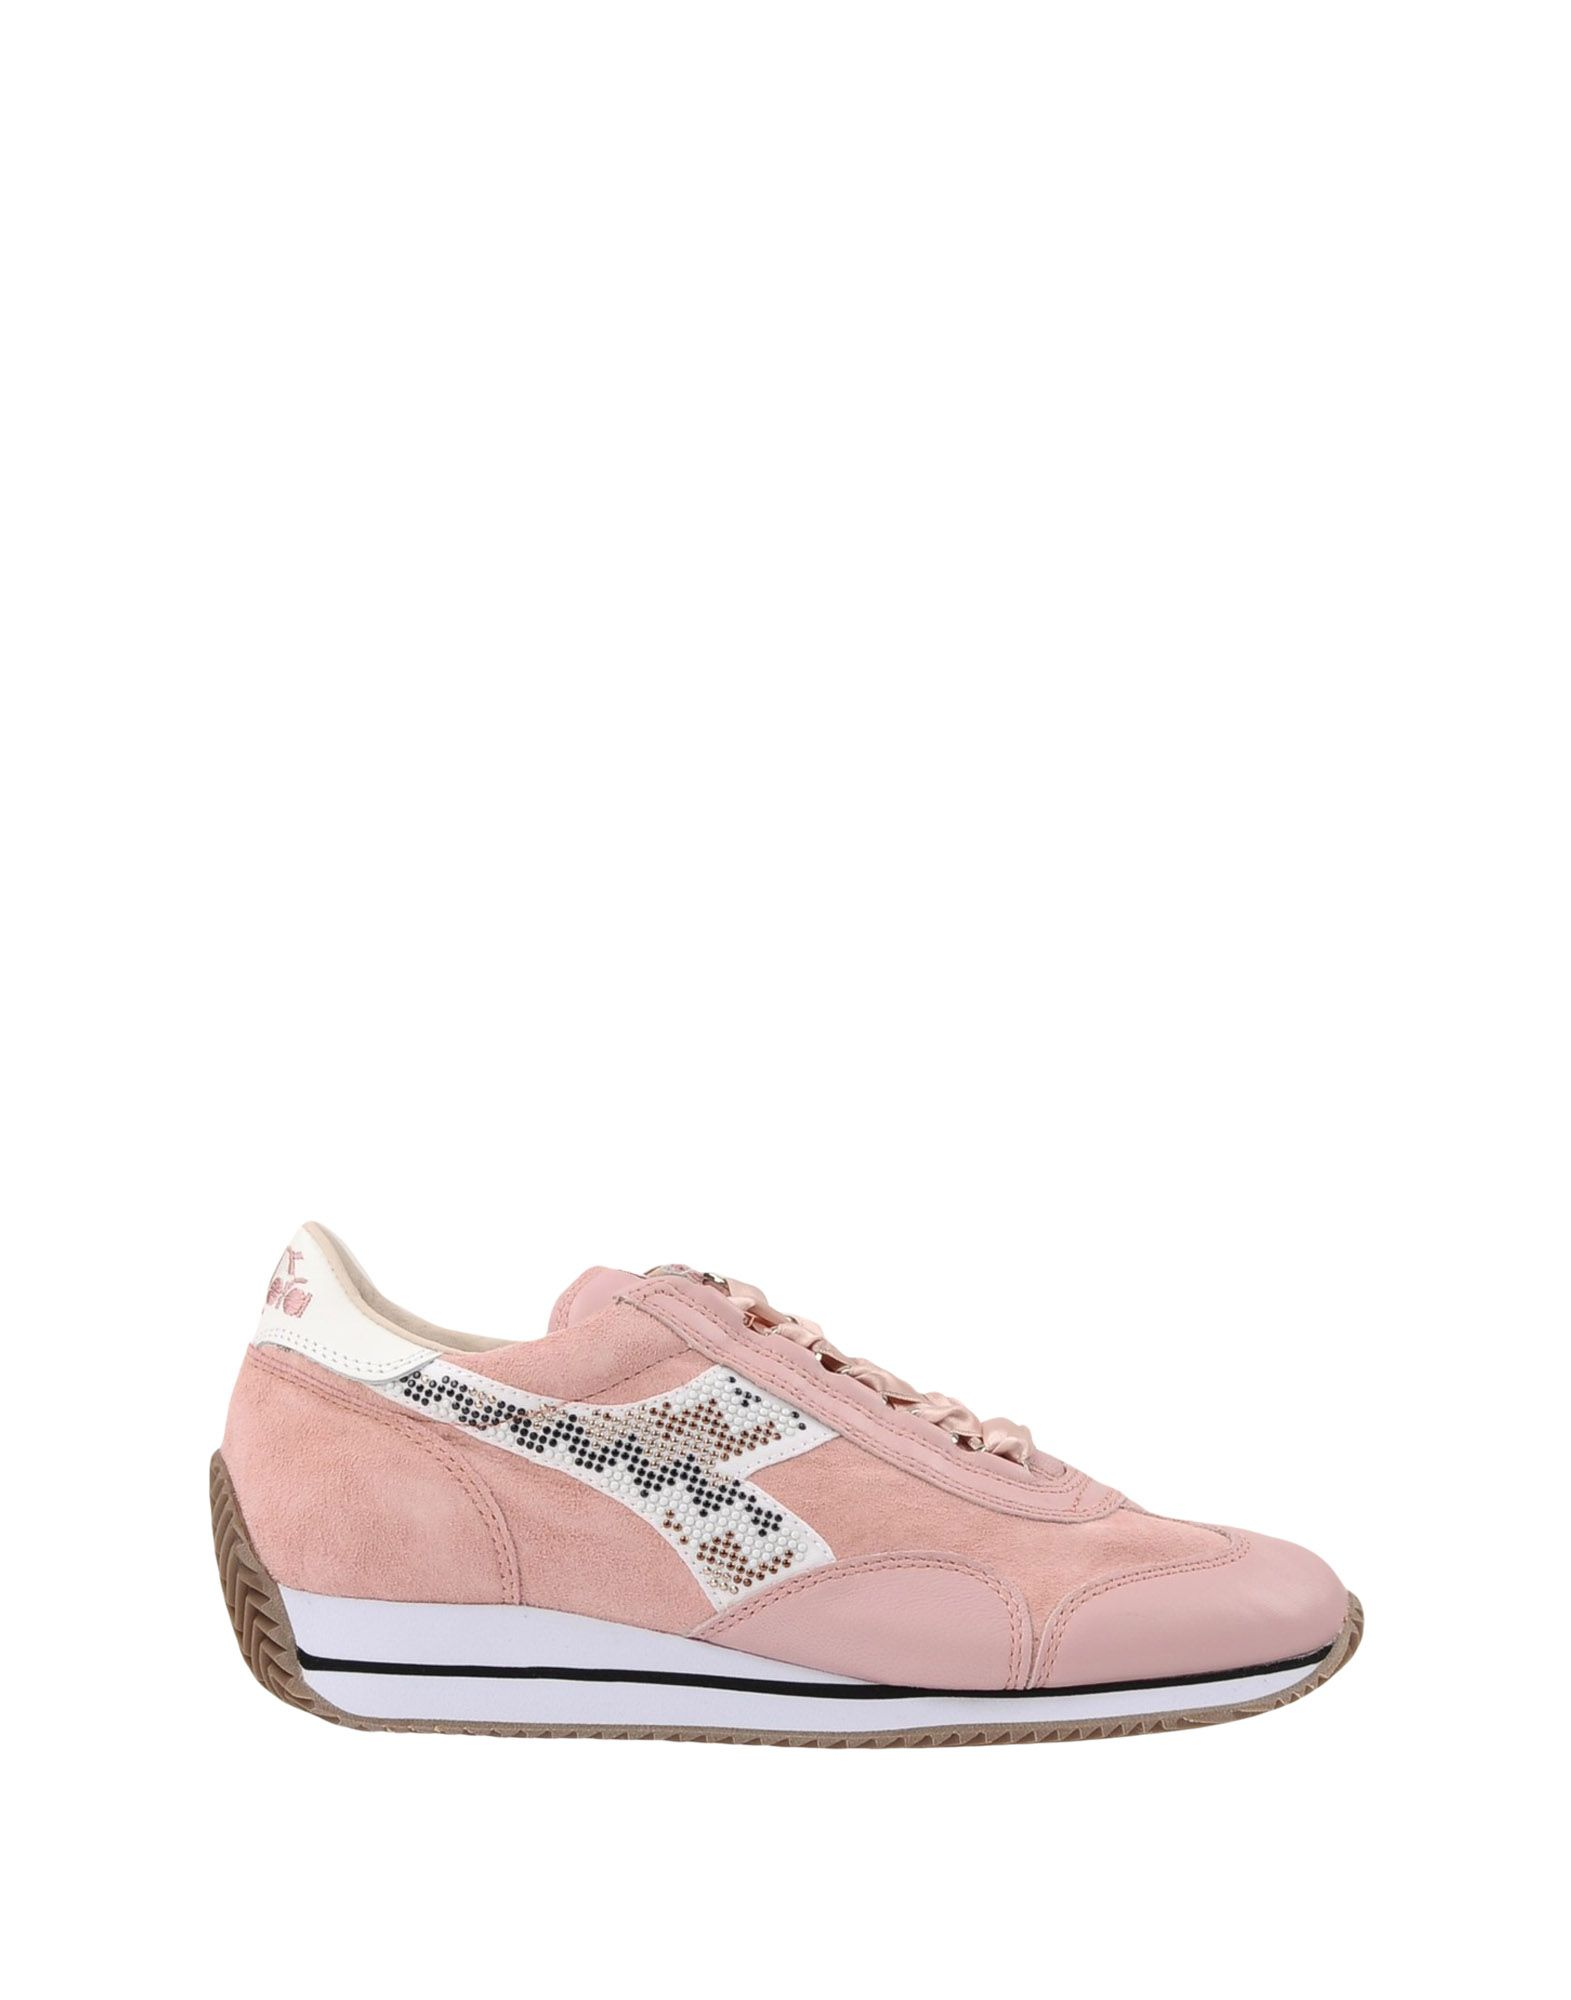 ... Sneakers Diadora Heritage Equipe W Hh Pearls - Femme - Sneakers Diadora  Heritage sur ...